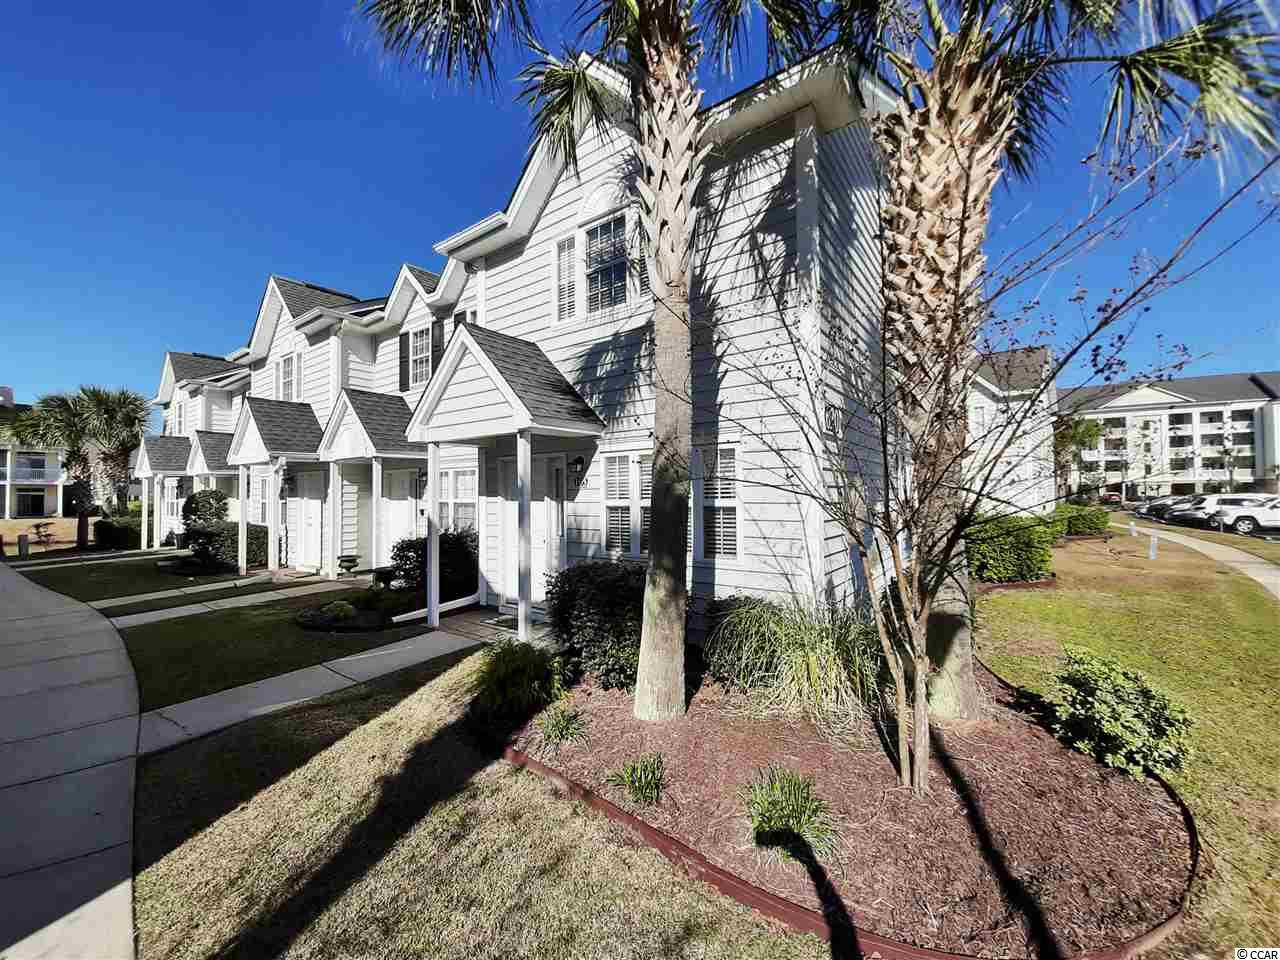 Welcome to Villas @ International Club in Murrells Inlet. A gated resort like community perfect for full time residency or a second home / golf retreat. This END UNIT 2BR/2.5Ba townhome conveys fully furnished and comes with all major kitchen appliances including washer & dryer. Being an End Unit there are additional windows on both first and second level that provide natural light and brings in the Carolina Sunshine. The first floor offers a spacious living room area, dining, kitchen, half bath and a walk in storage area beneath the staircase. Upstairs are 2 bedrooms, each with private baths and walk in closets. The Laundry is also located upstairs adjacent to the bedrooms. Just off the kitchen is a patio area that includes an attached outdoor storage closet and PVC privacy fencing. Villas at the International Club borders the International Club Golf Course, is gated and has a private pool area for residents and guest. The community is conveniently located close to the Murrells Inlet Marsh Walk, Huntington Beach State Park and Brookgreen Gardens. This home has always been a second home only, never occupied full time and never rented. A New HVAC System was installed January 2020. Don't miss it !! Call today with any questions or to schedule a time to view this exceptional home.